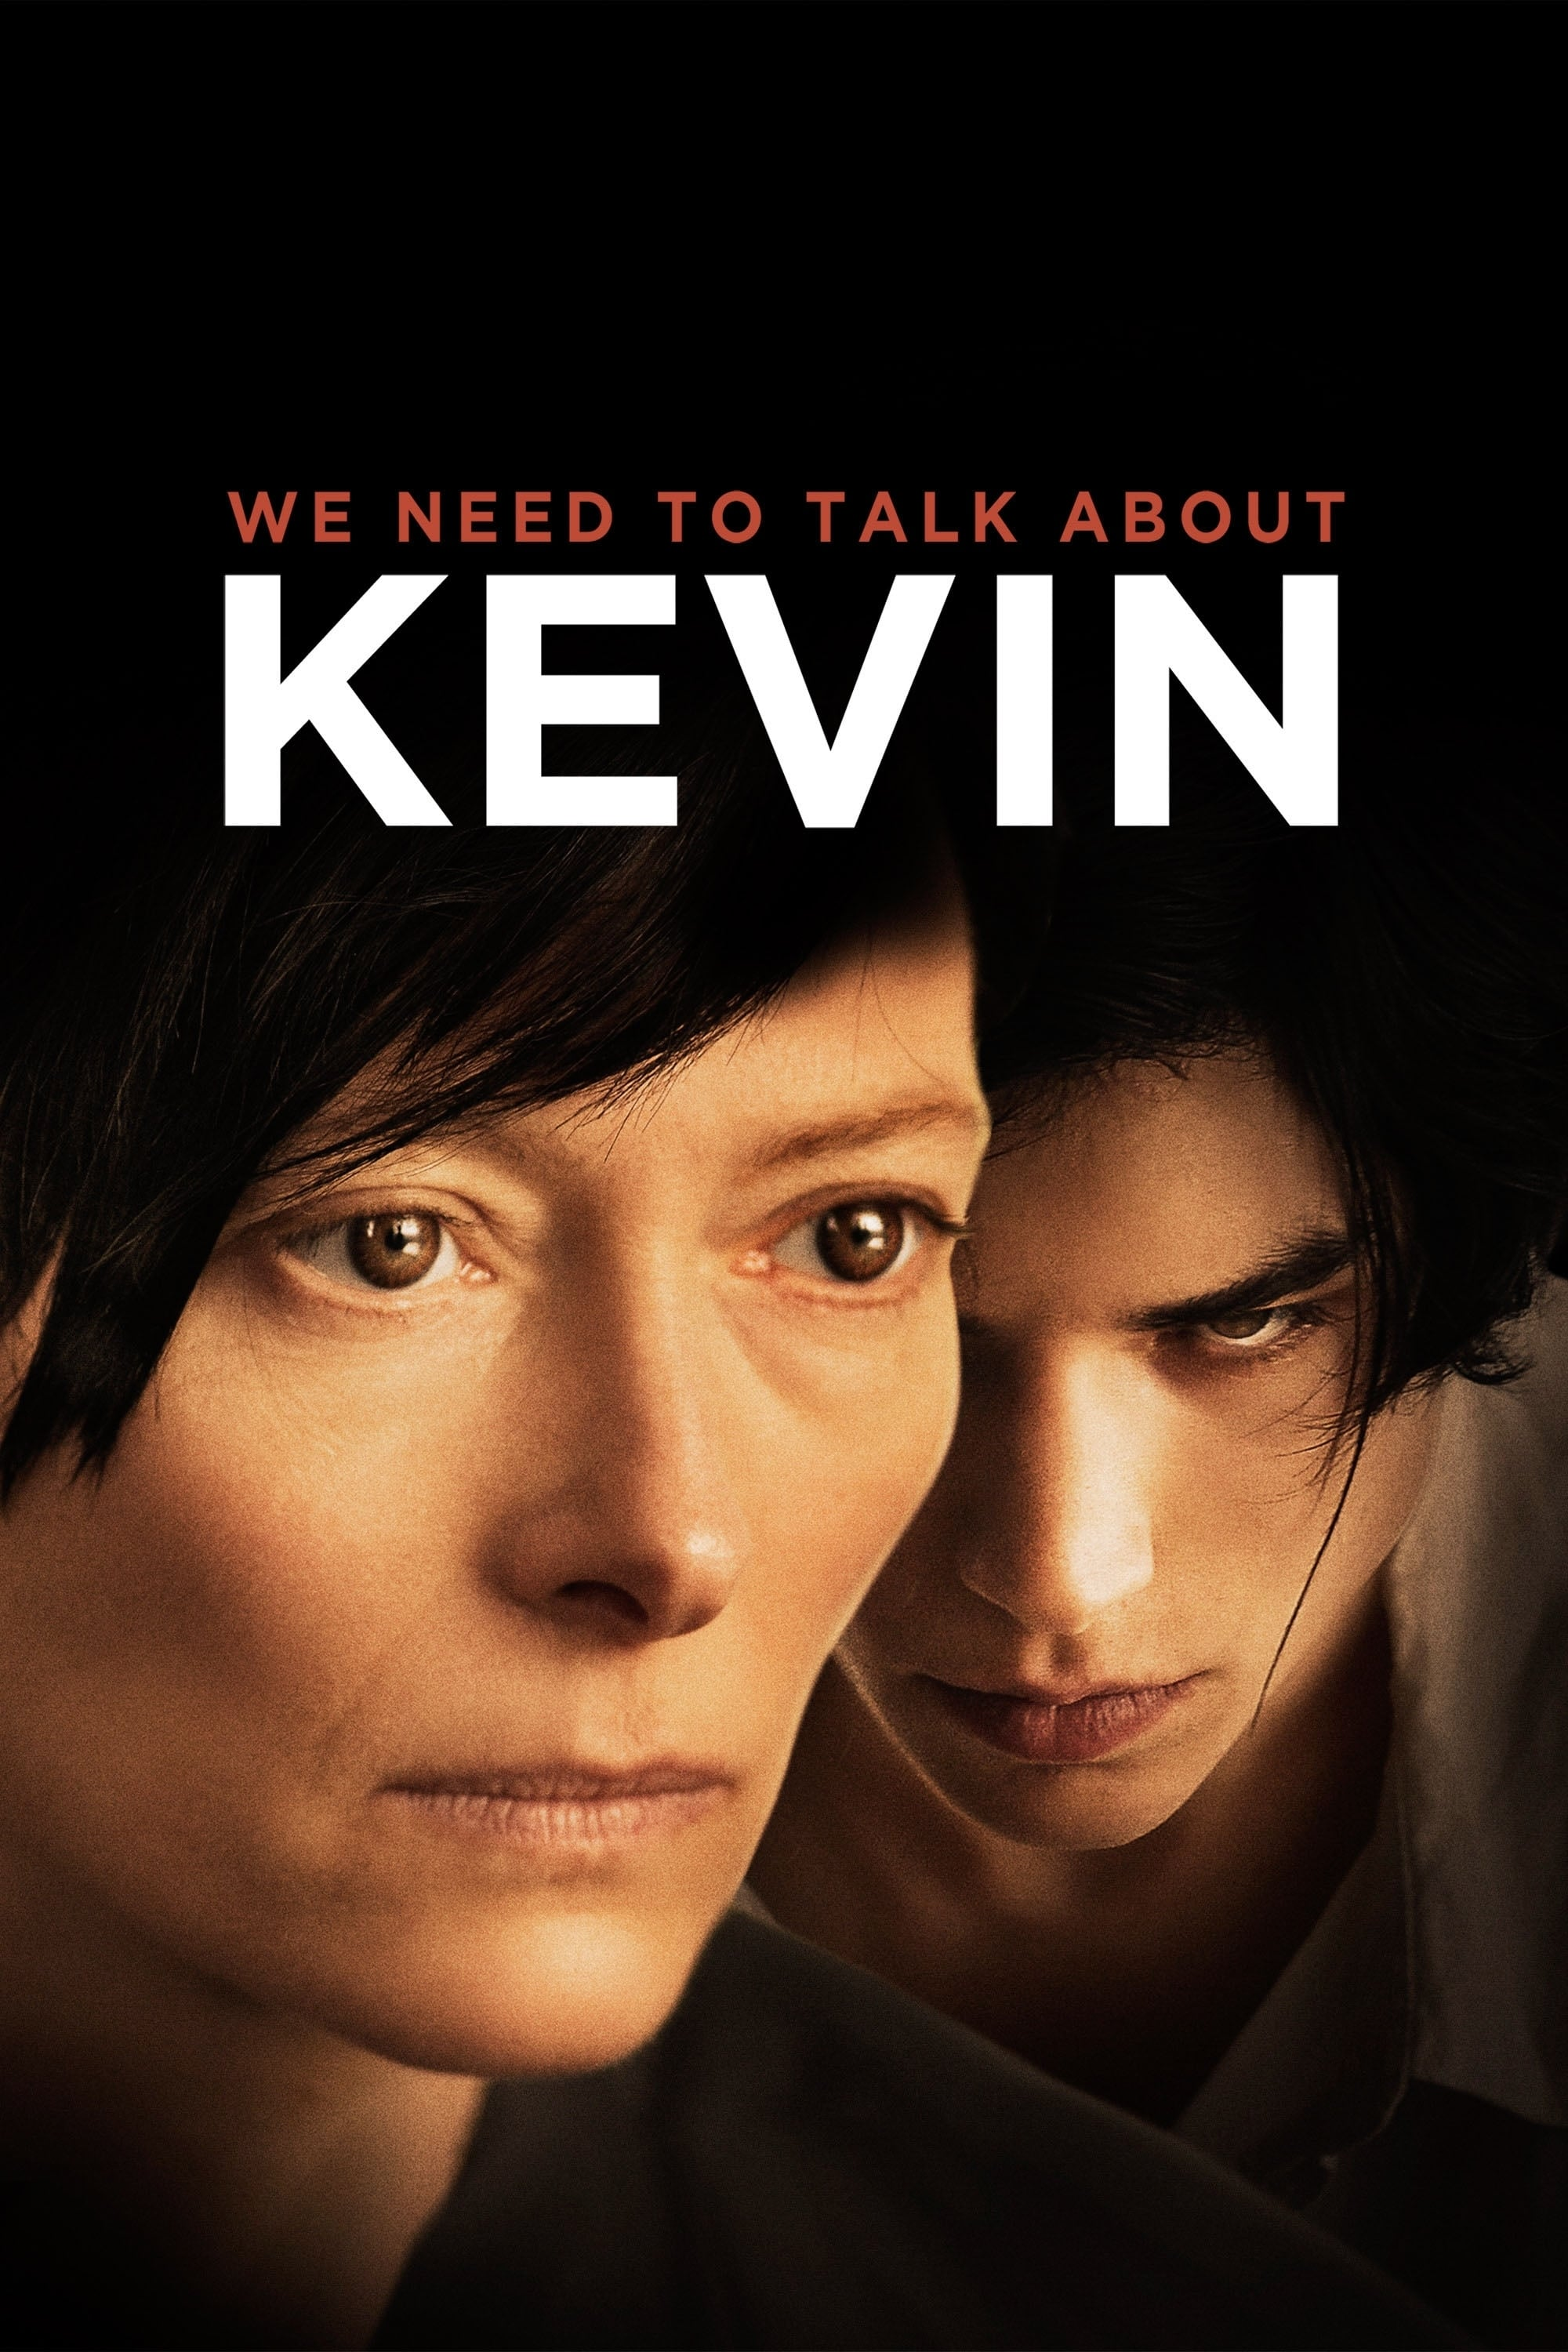 We Need to Talk About Kevin - Film (2011)